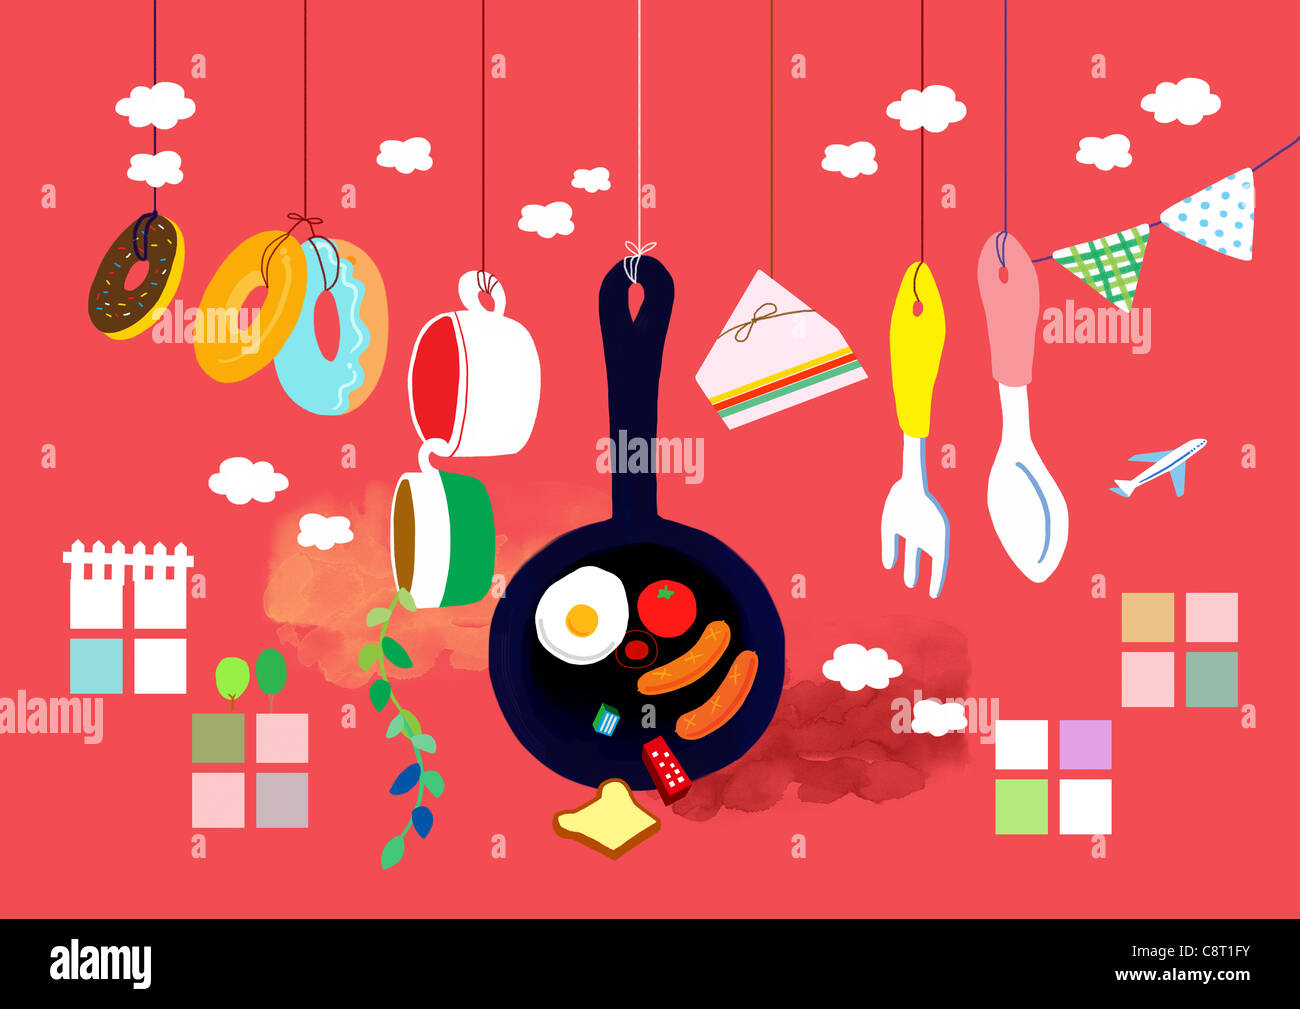 Kitchen Utensil Hanging With String On Red Background - Stock Image